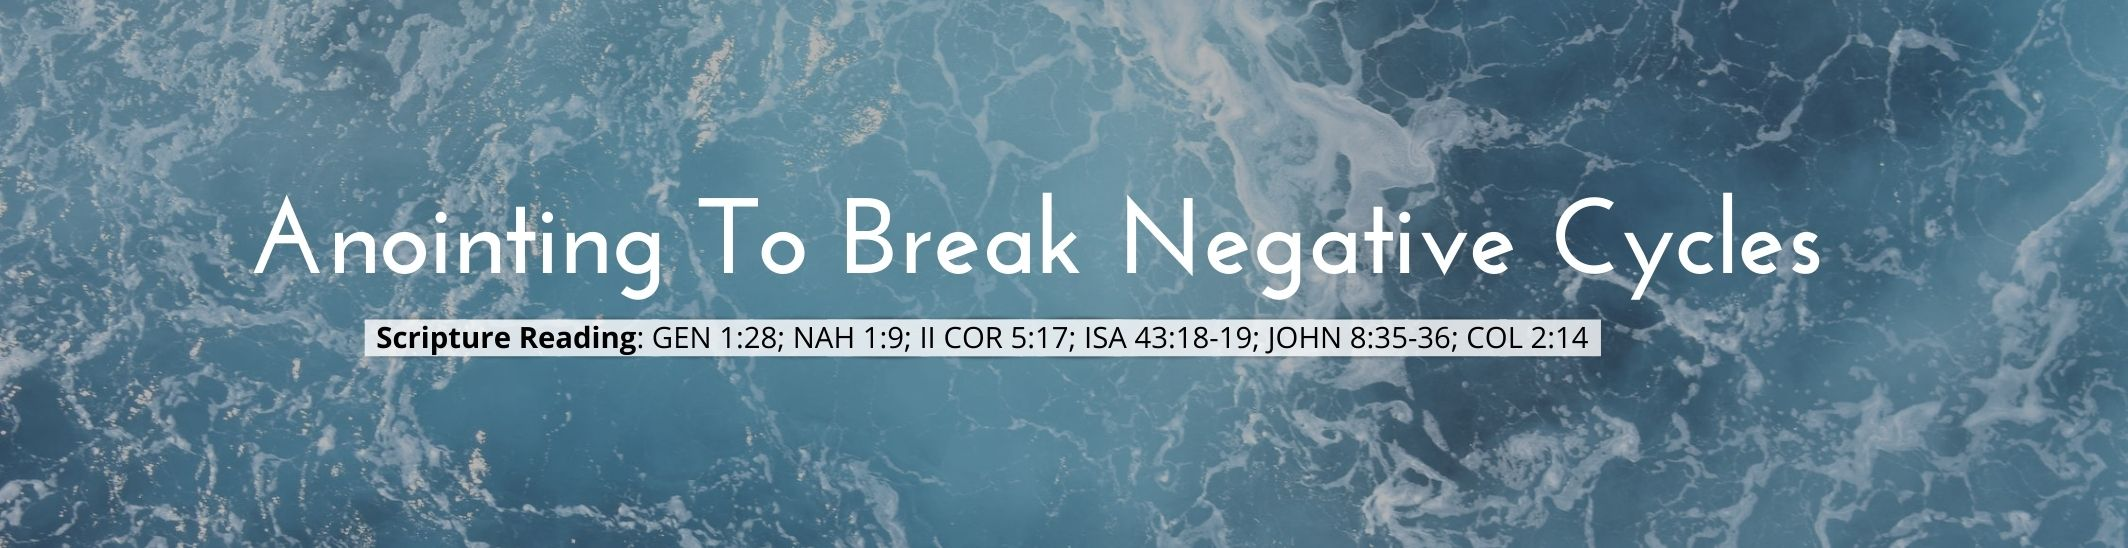 Anointing To Break Negative Cycles